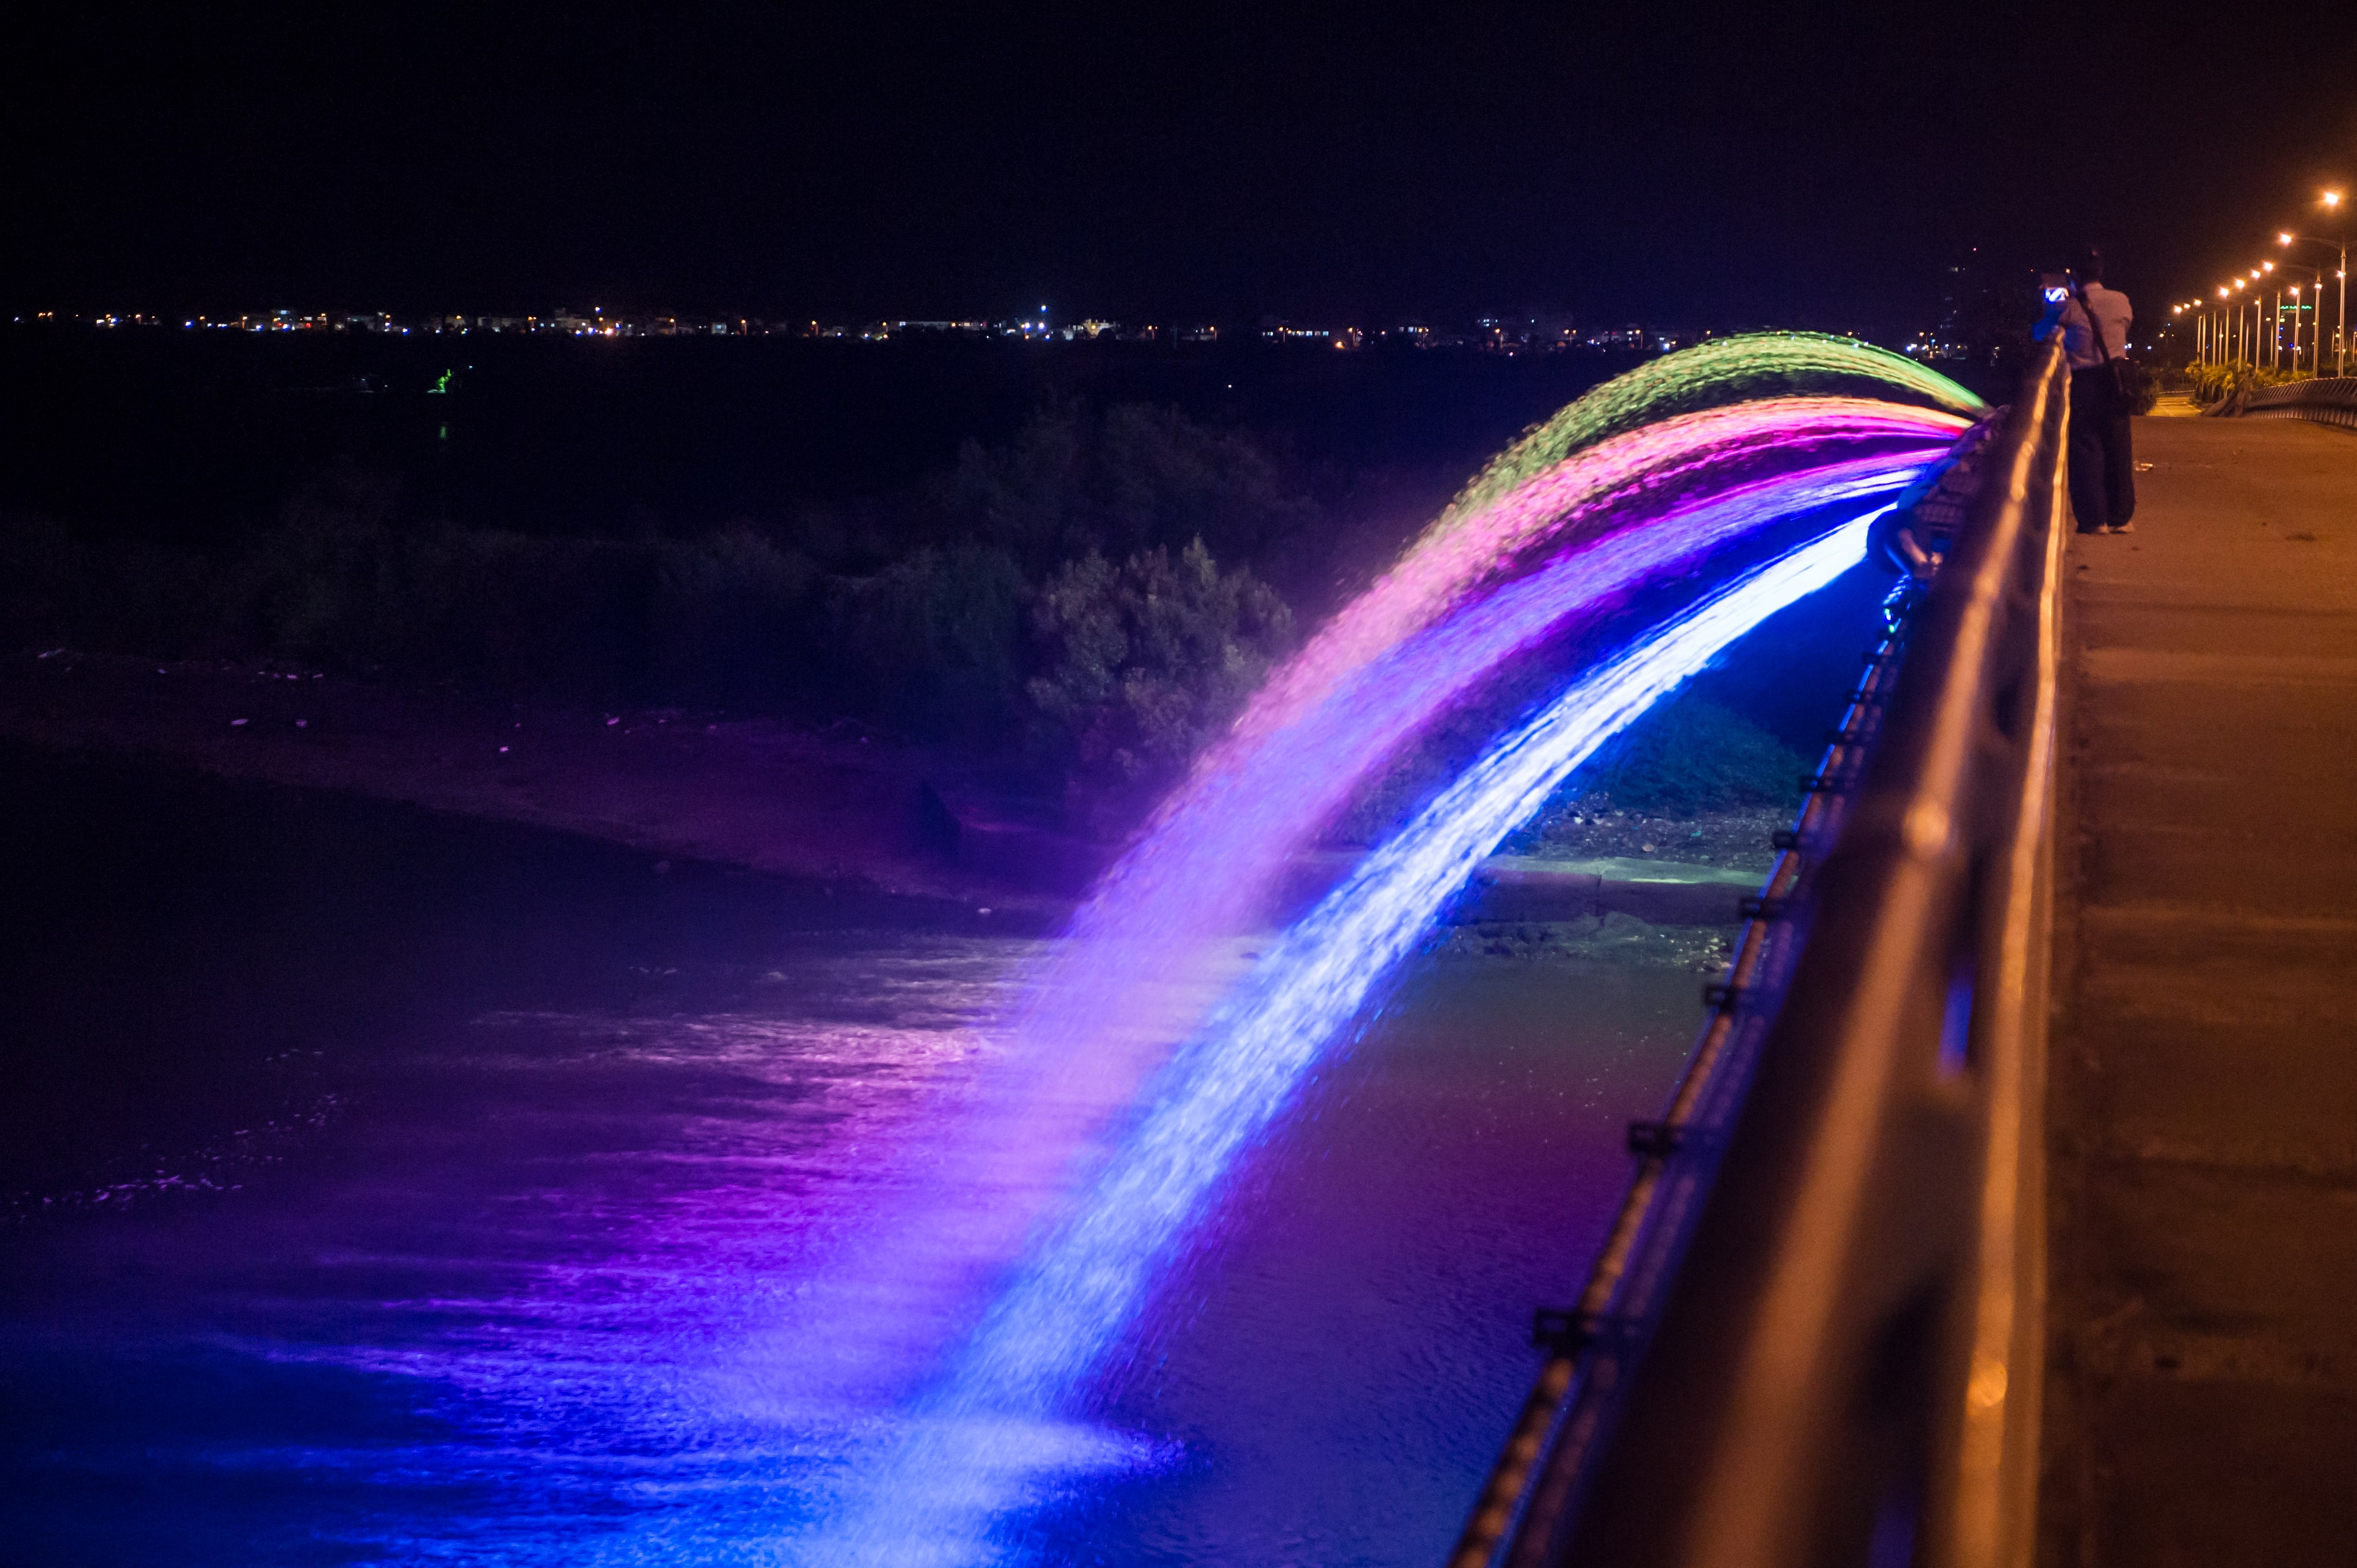 Rainbow Water Dance & Light Show of Sankong Bridge turns the bay into a tantalizing place